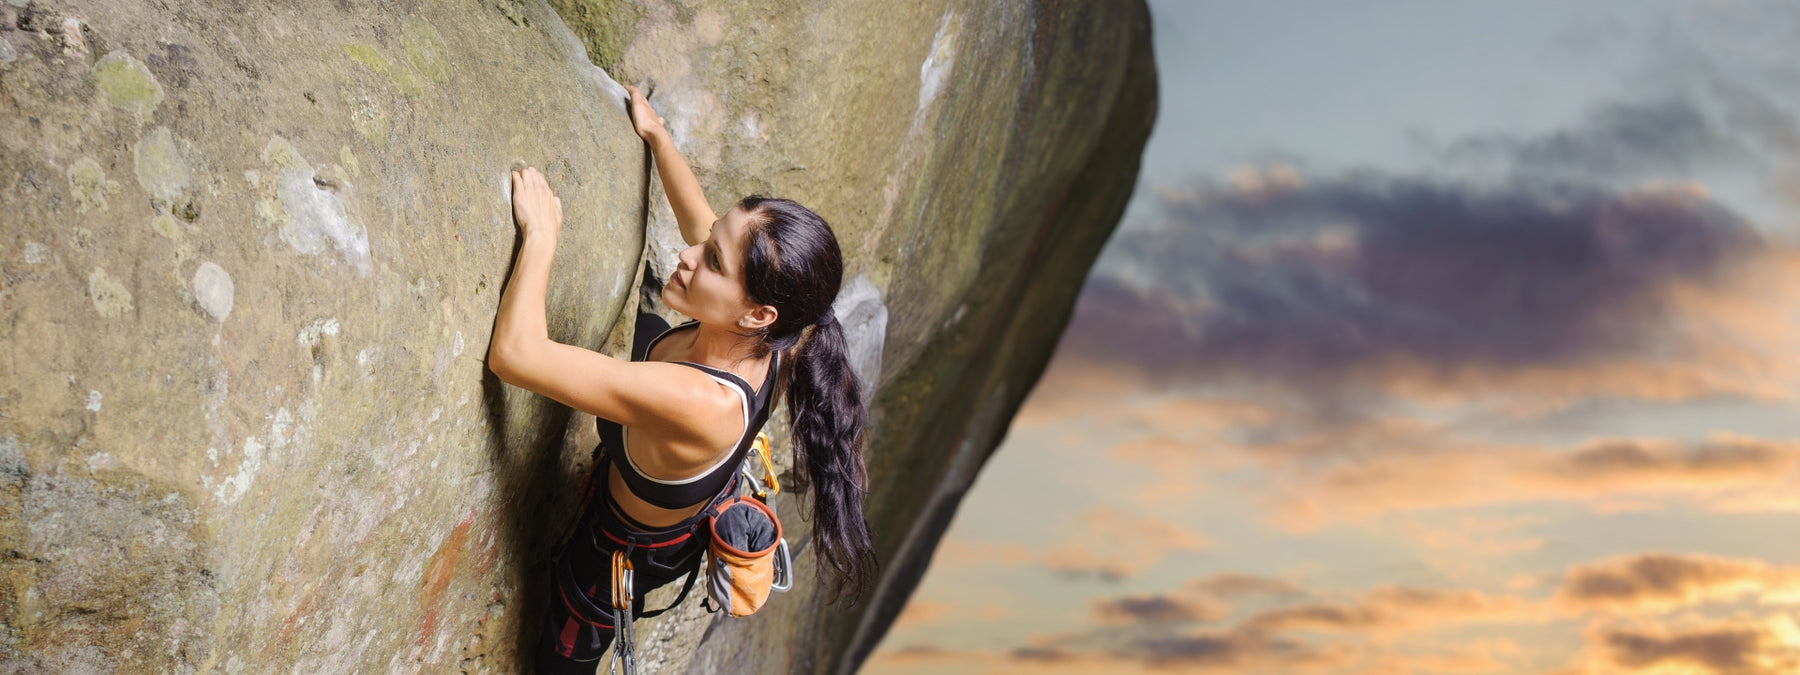 Rock Climbing - What to Know Before You Start